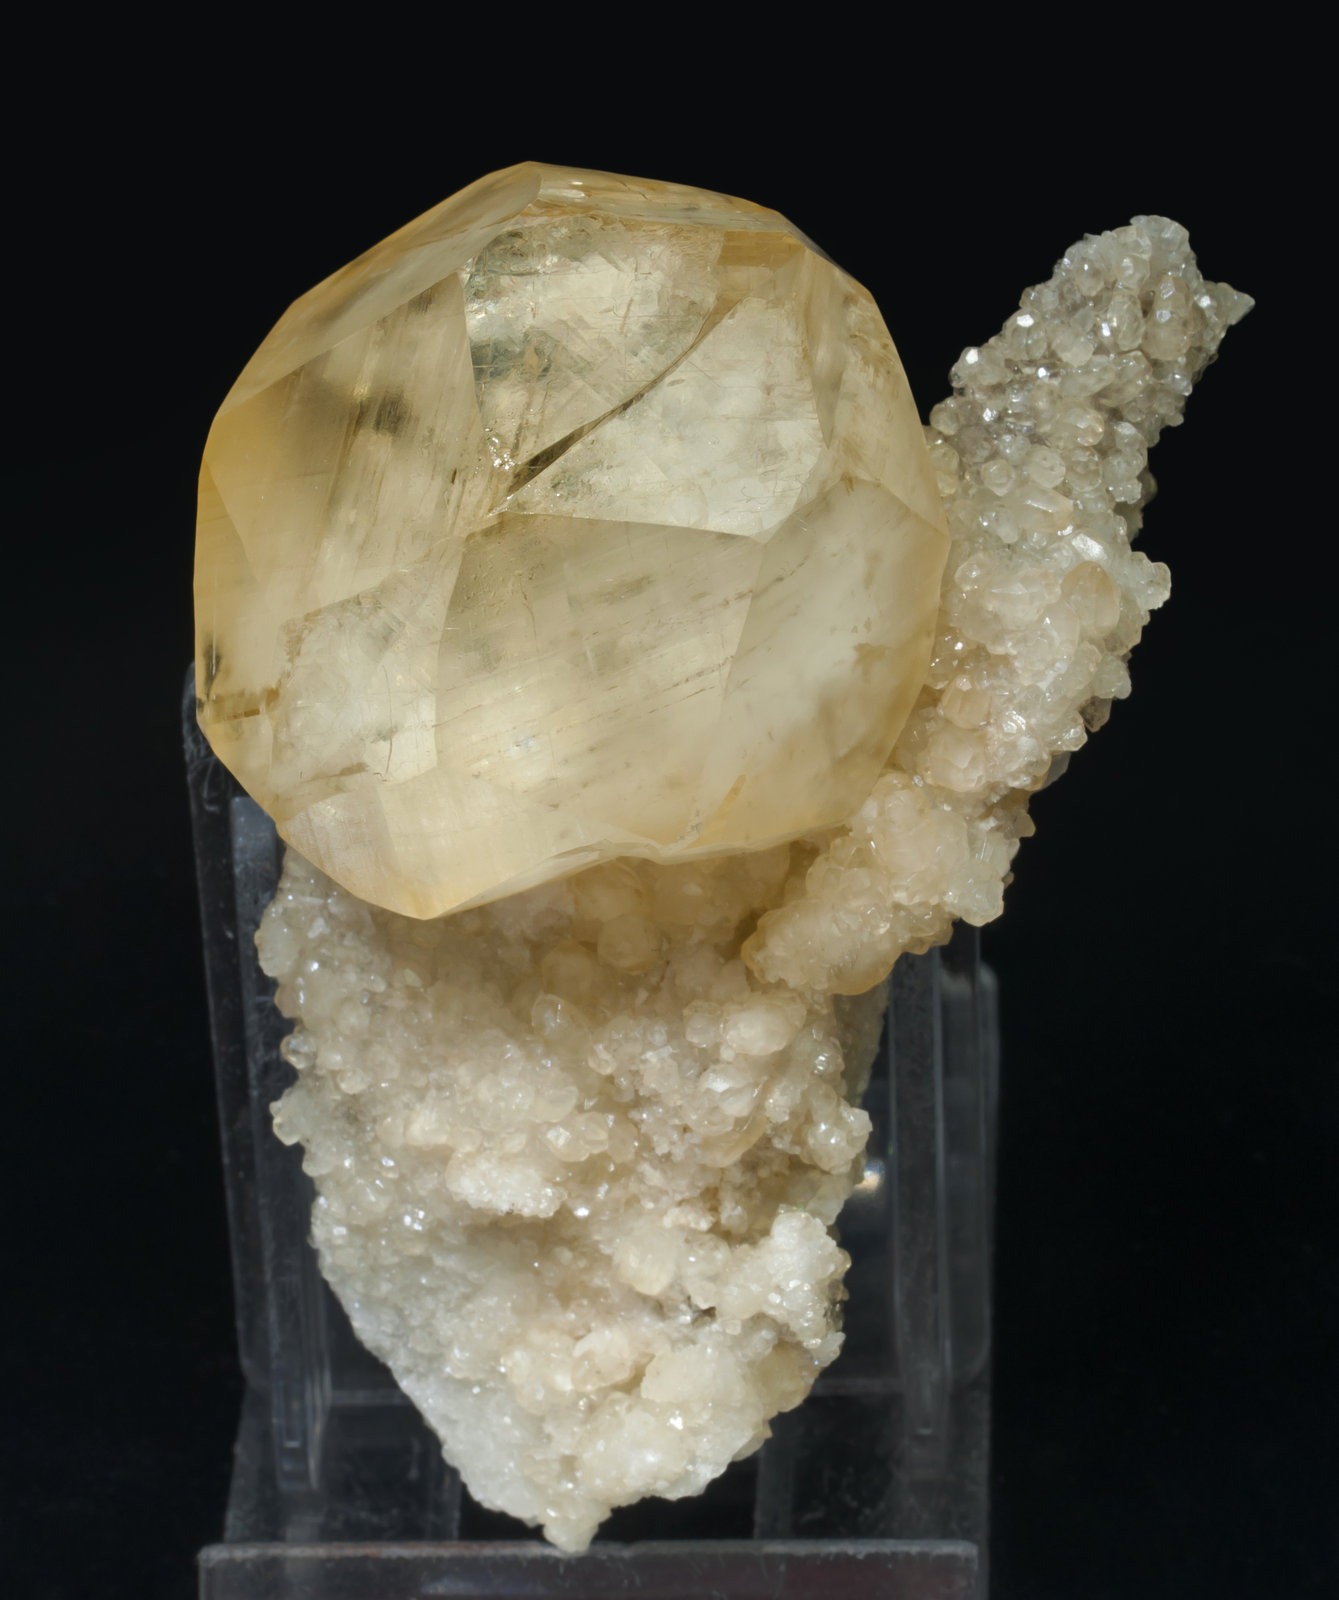 specimens/s_imagesAE2/Calcite-NM27AE2s.jpg